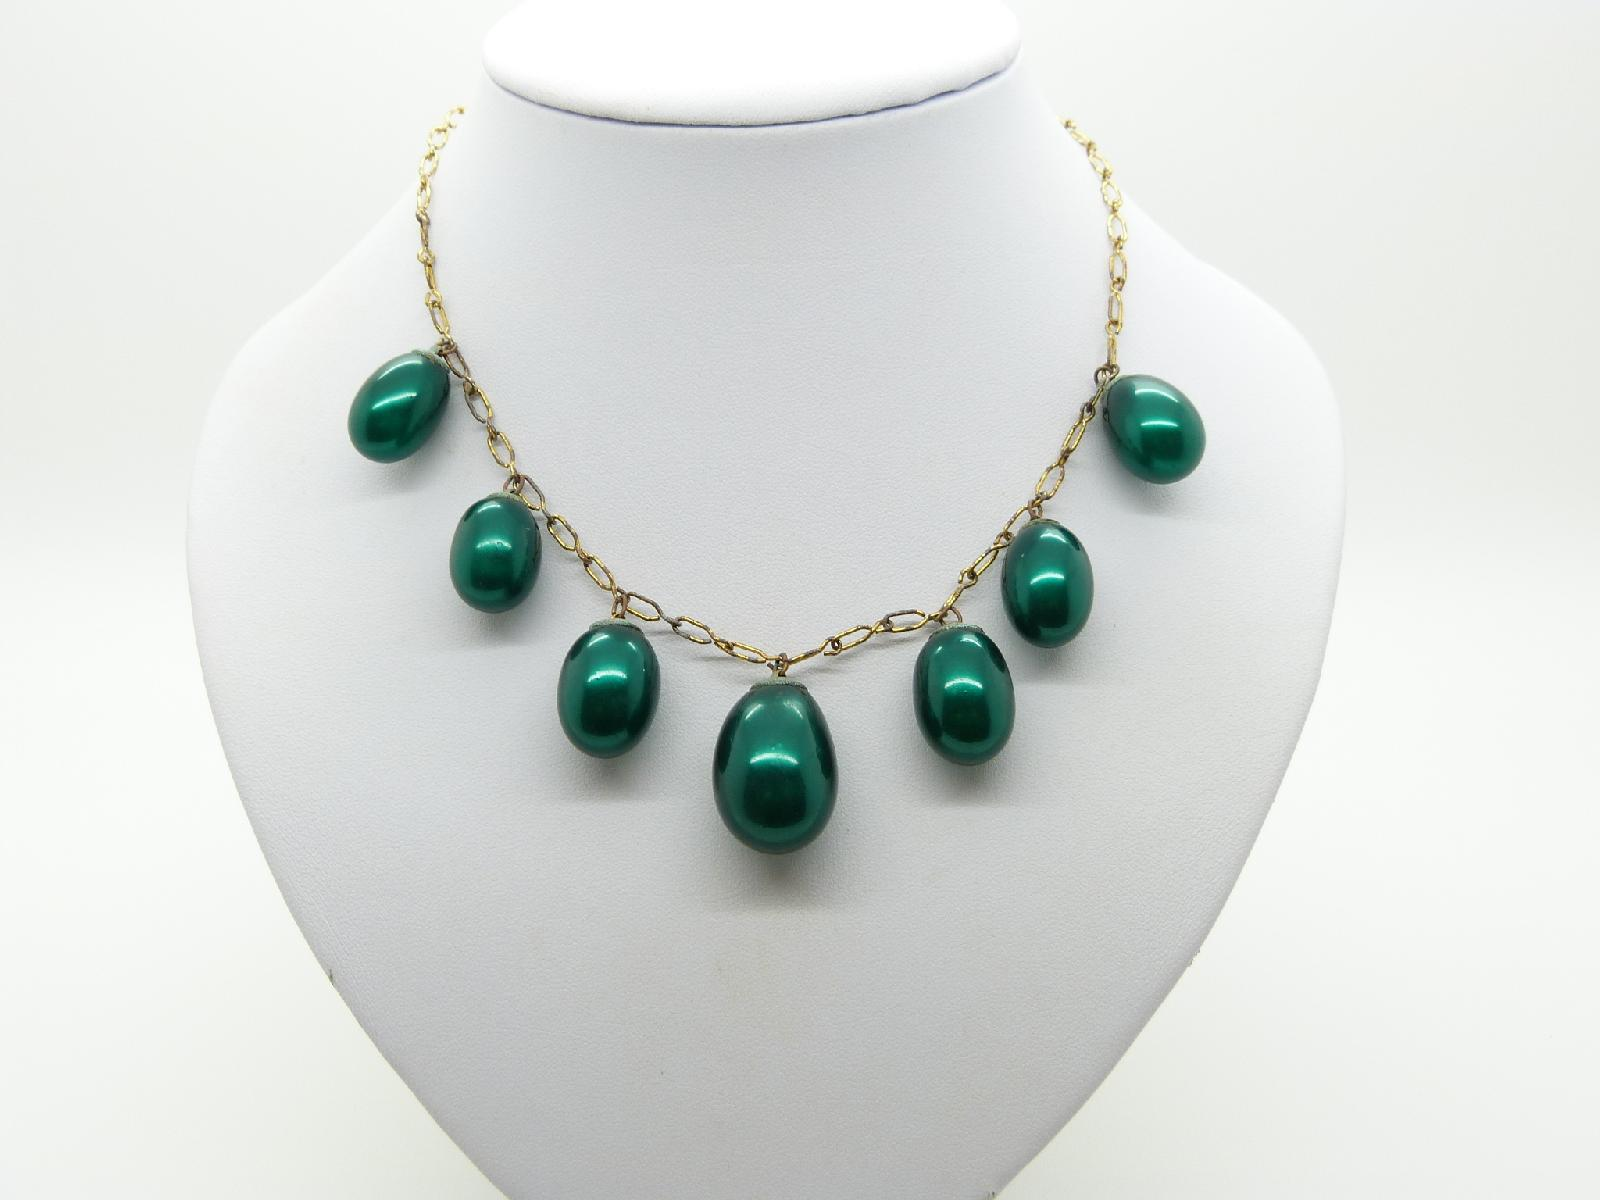 Vintage 40s Fab Large Green Pearl Lustre Drop Bead Necklace on Gold Chain